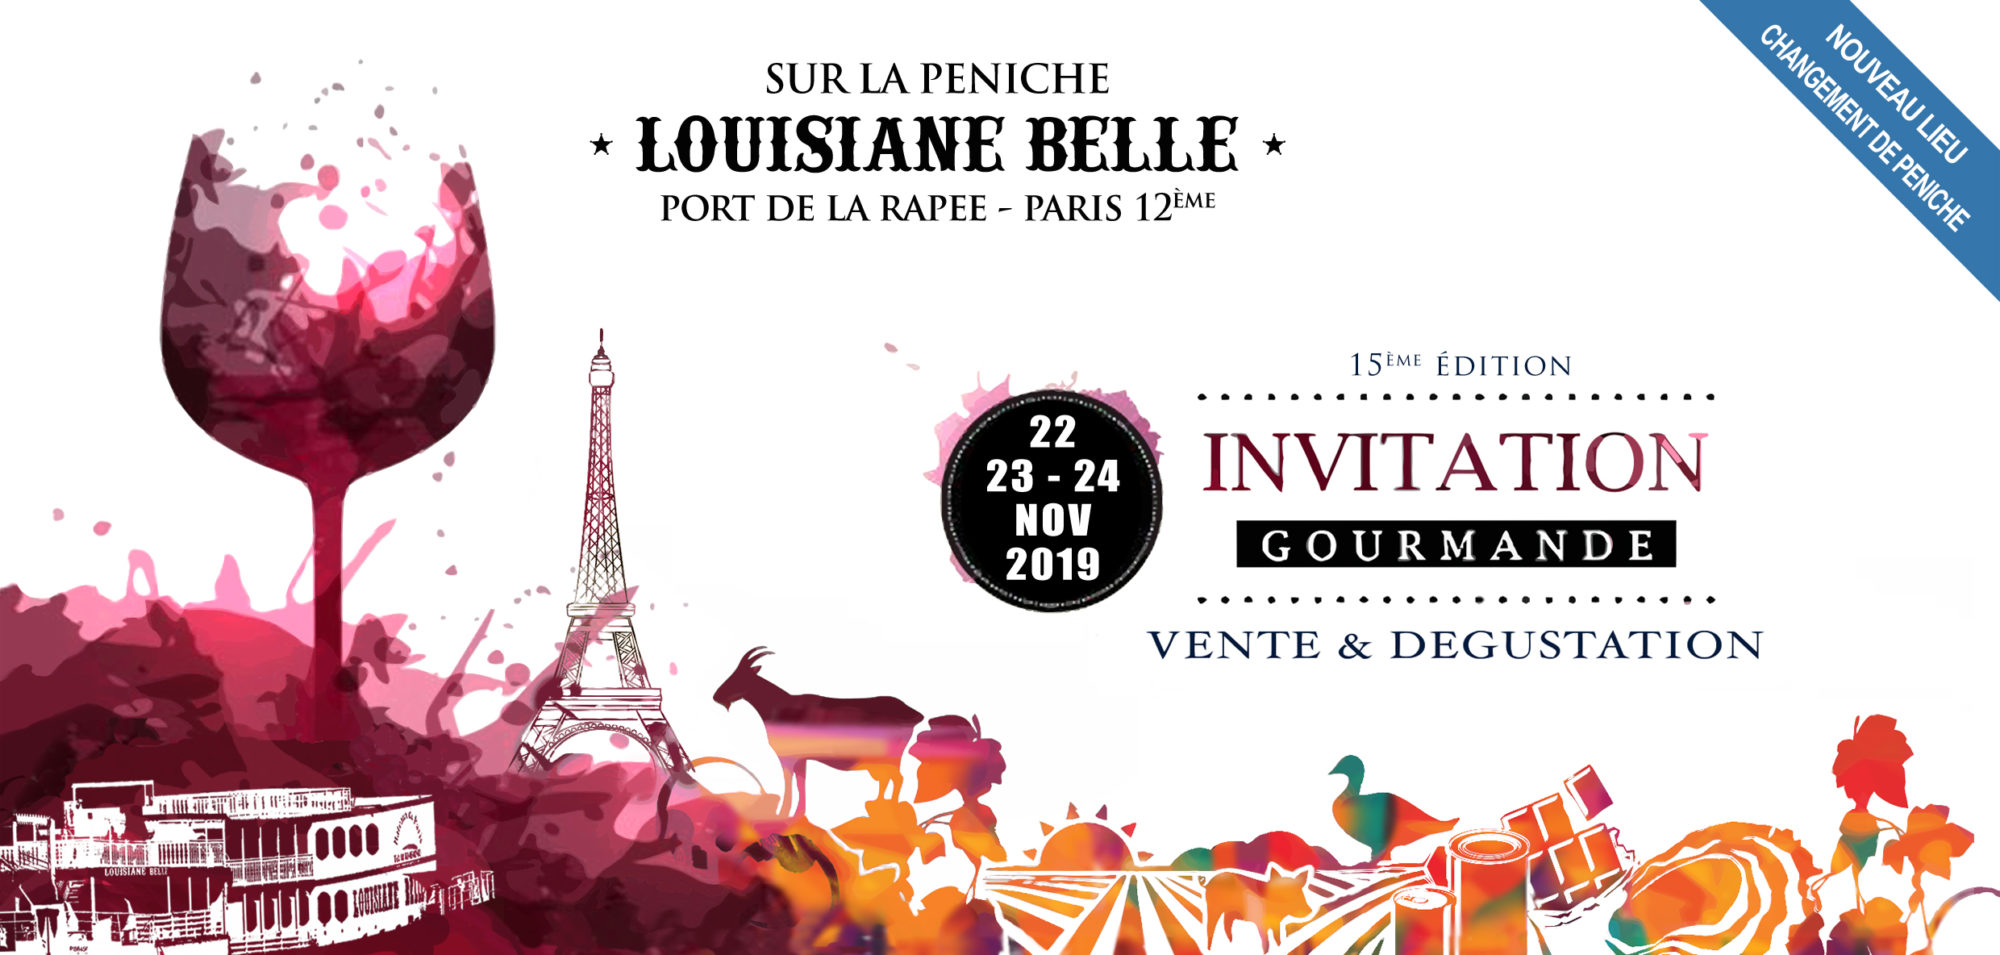 Invitation au salon gourmand sur la Péniche Louisiane Belle à Paris